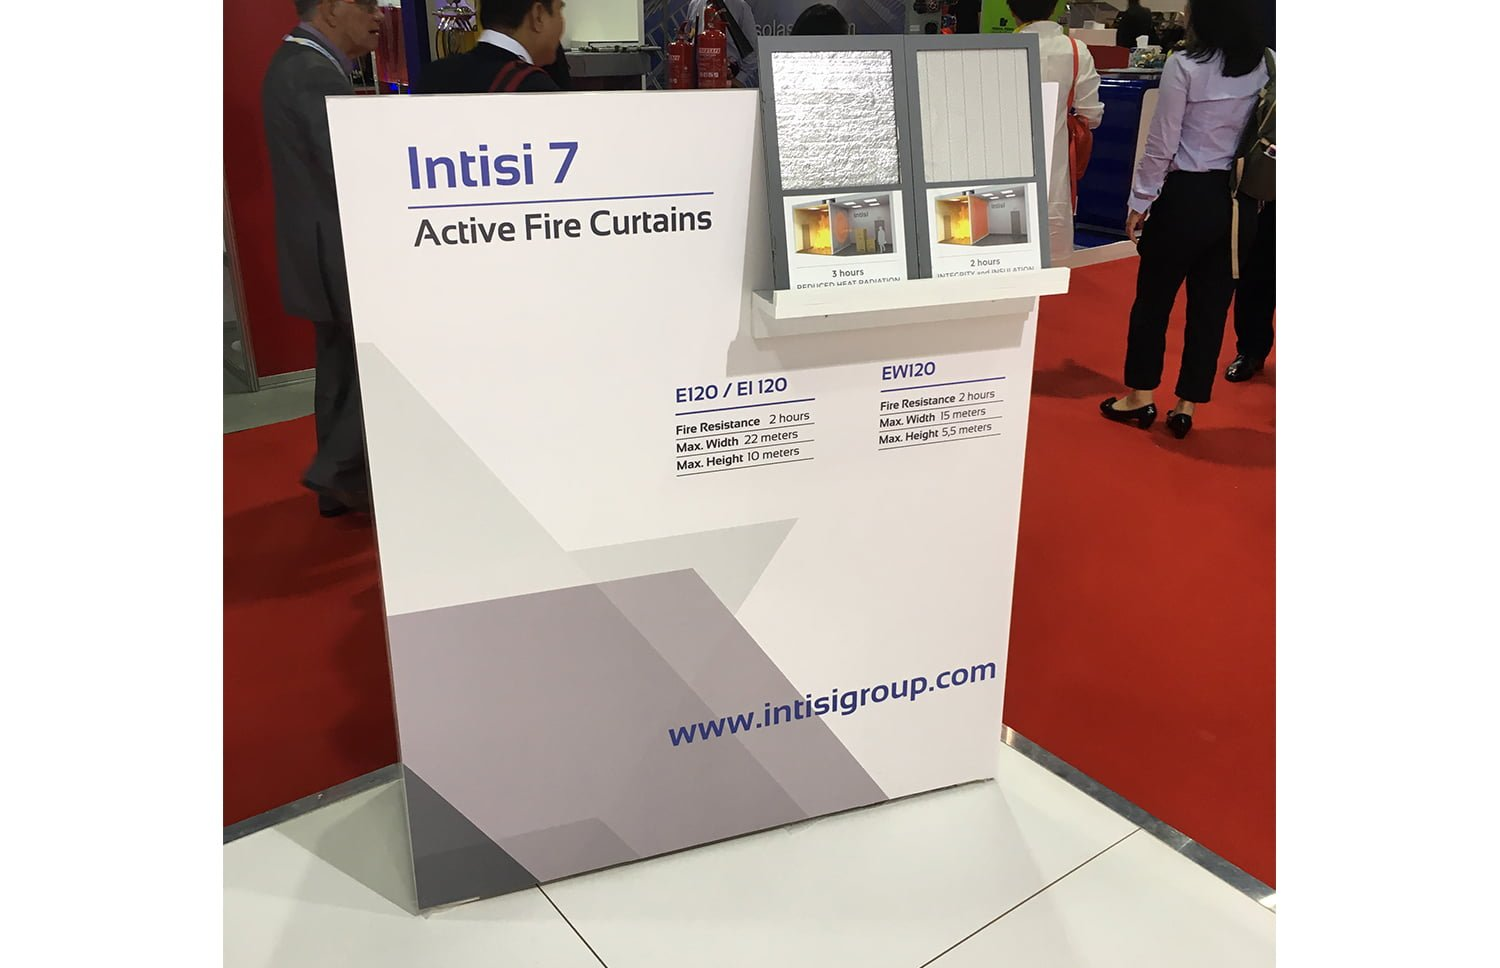 Detalle stand materiales - INTISI, un proyecto global con soluciones a medida